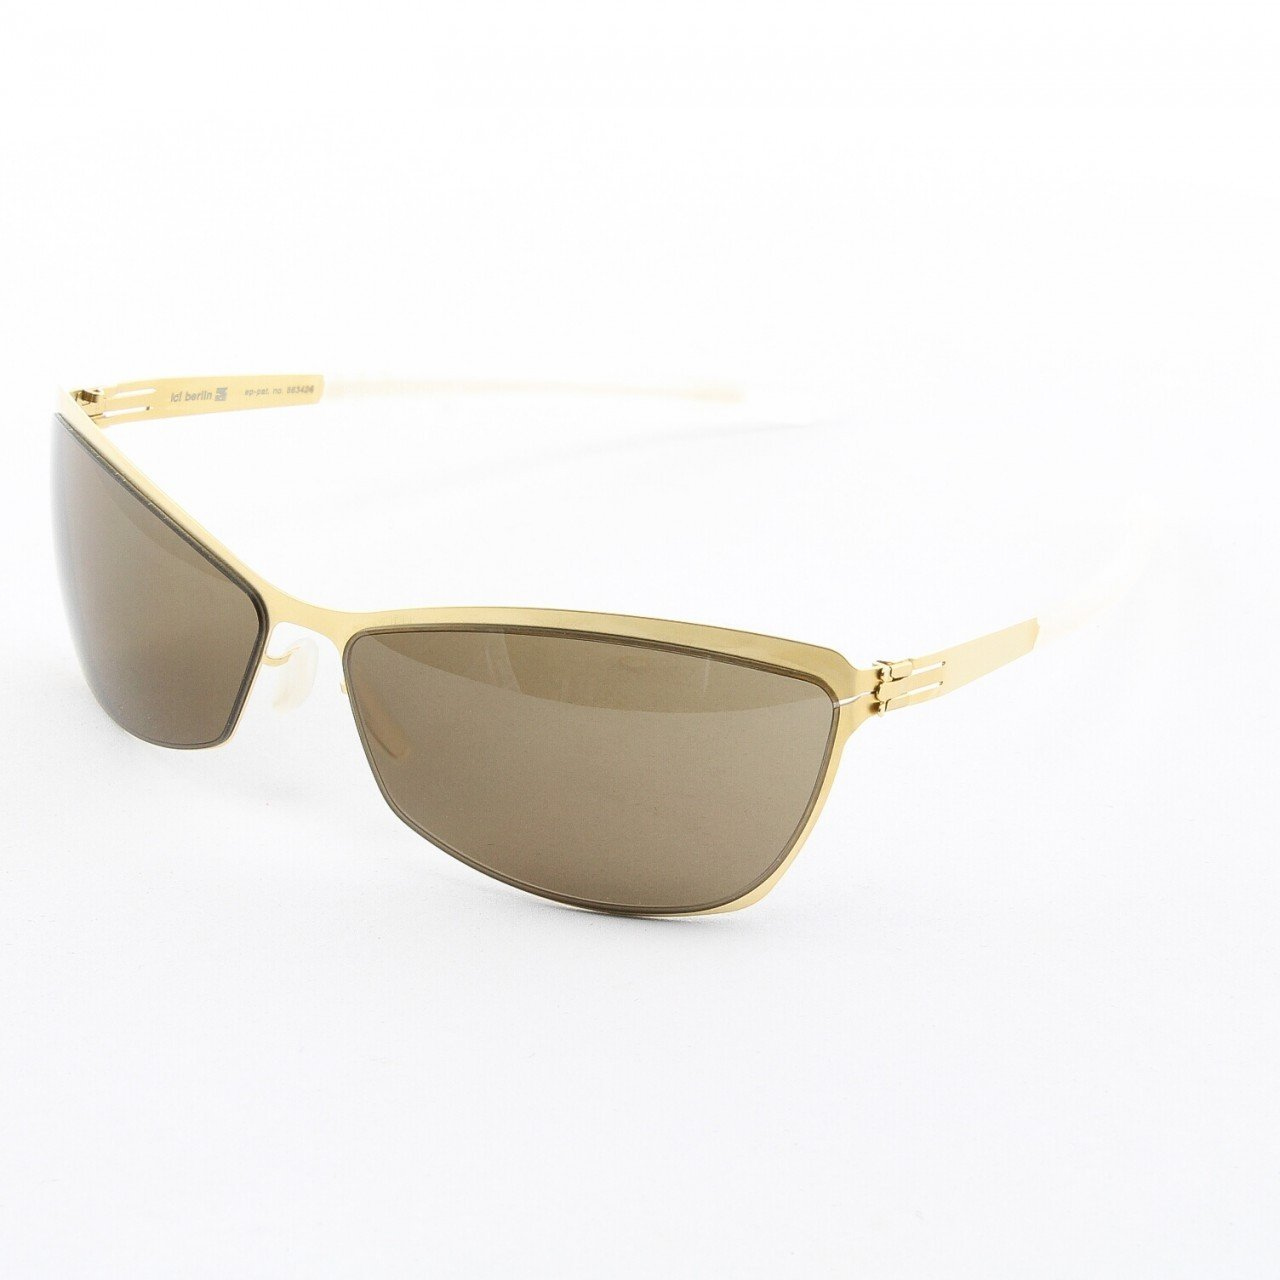 ic! Berlin Cacilia Sunglasses Col. Gold with Brown Lenses